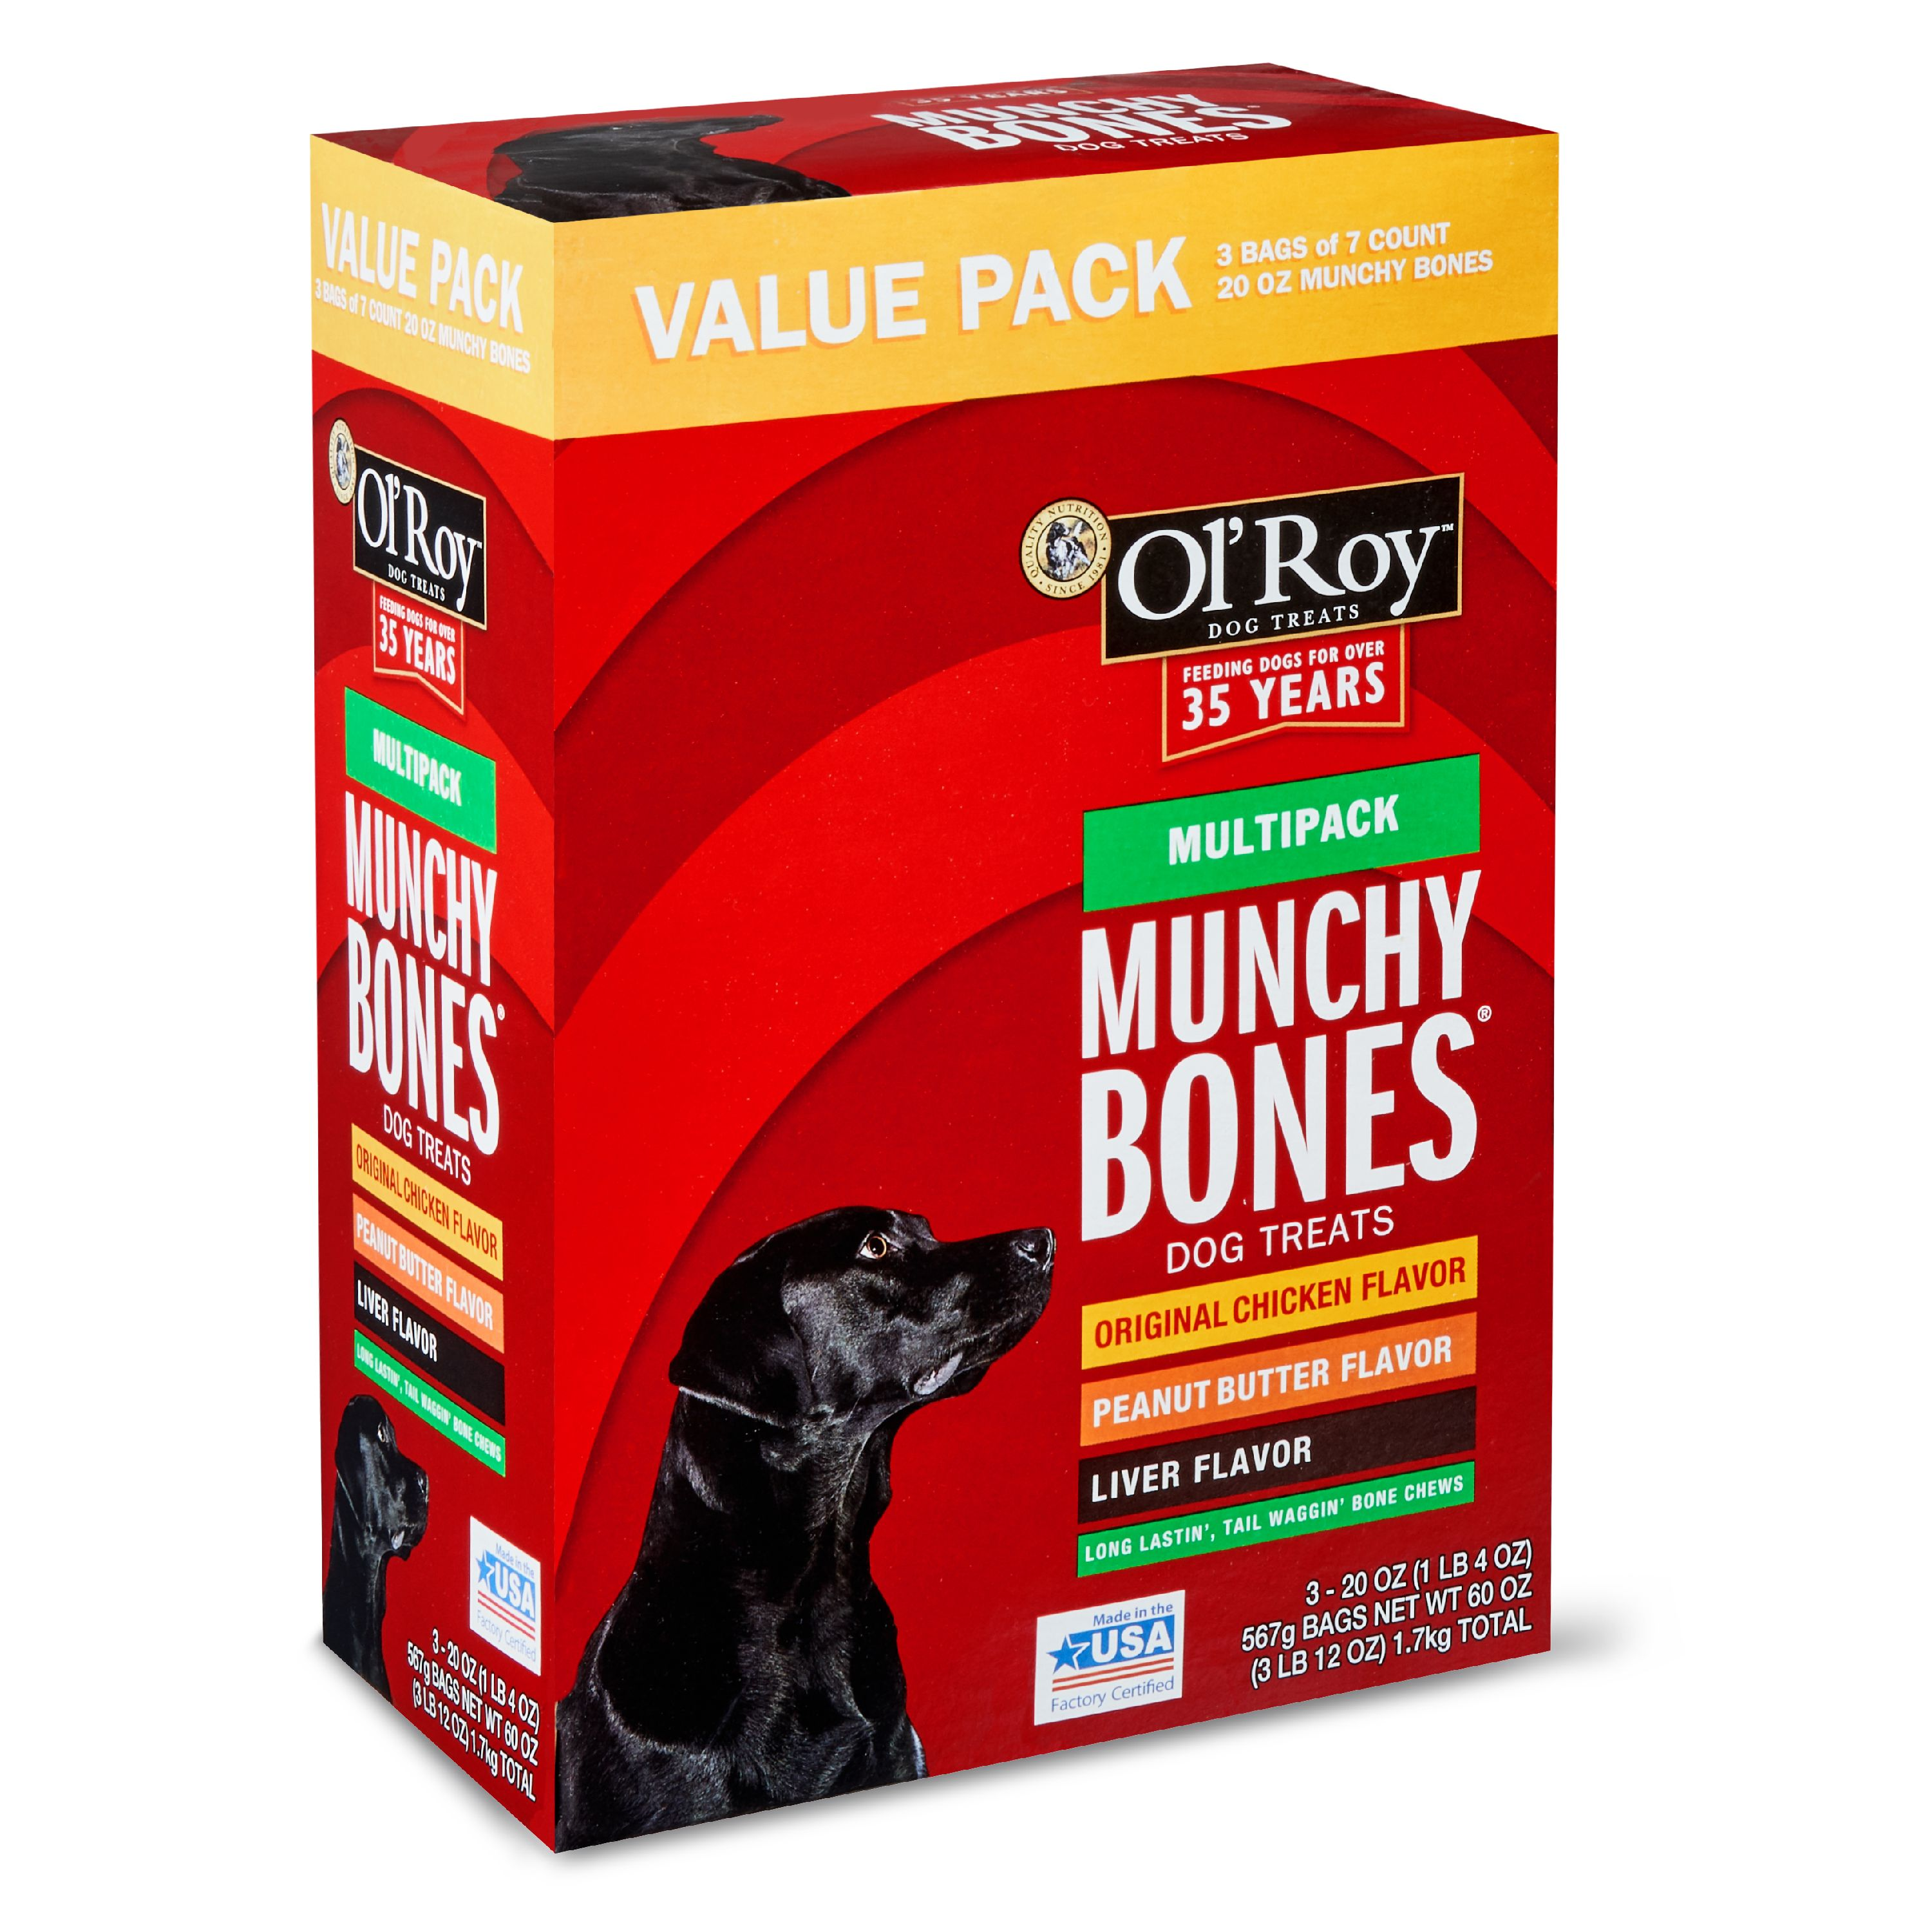 Ol' Roy Munchy Bones Dog Treats, Multipack, Chicken, Liver & Peanut Butter, 60 oz, 21 Count